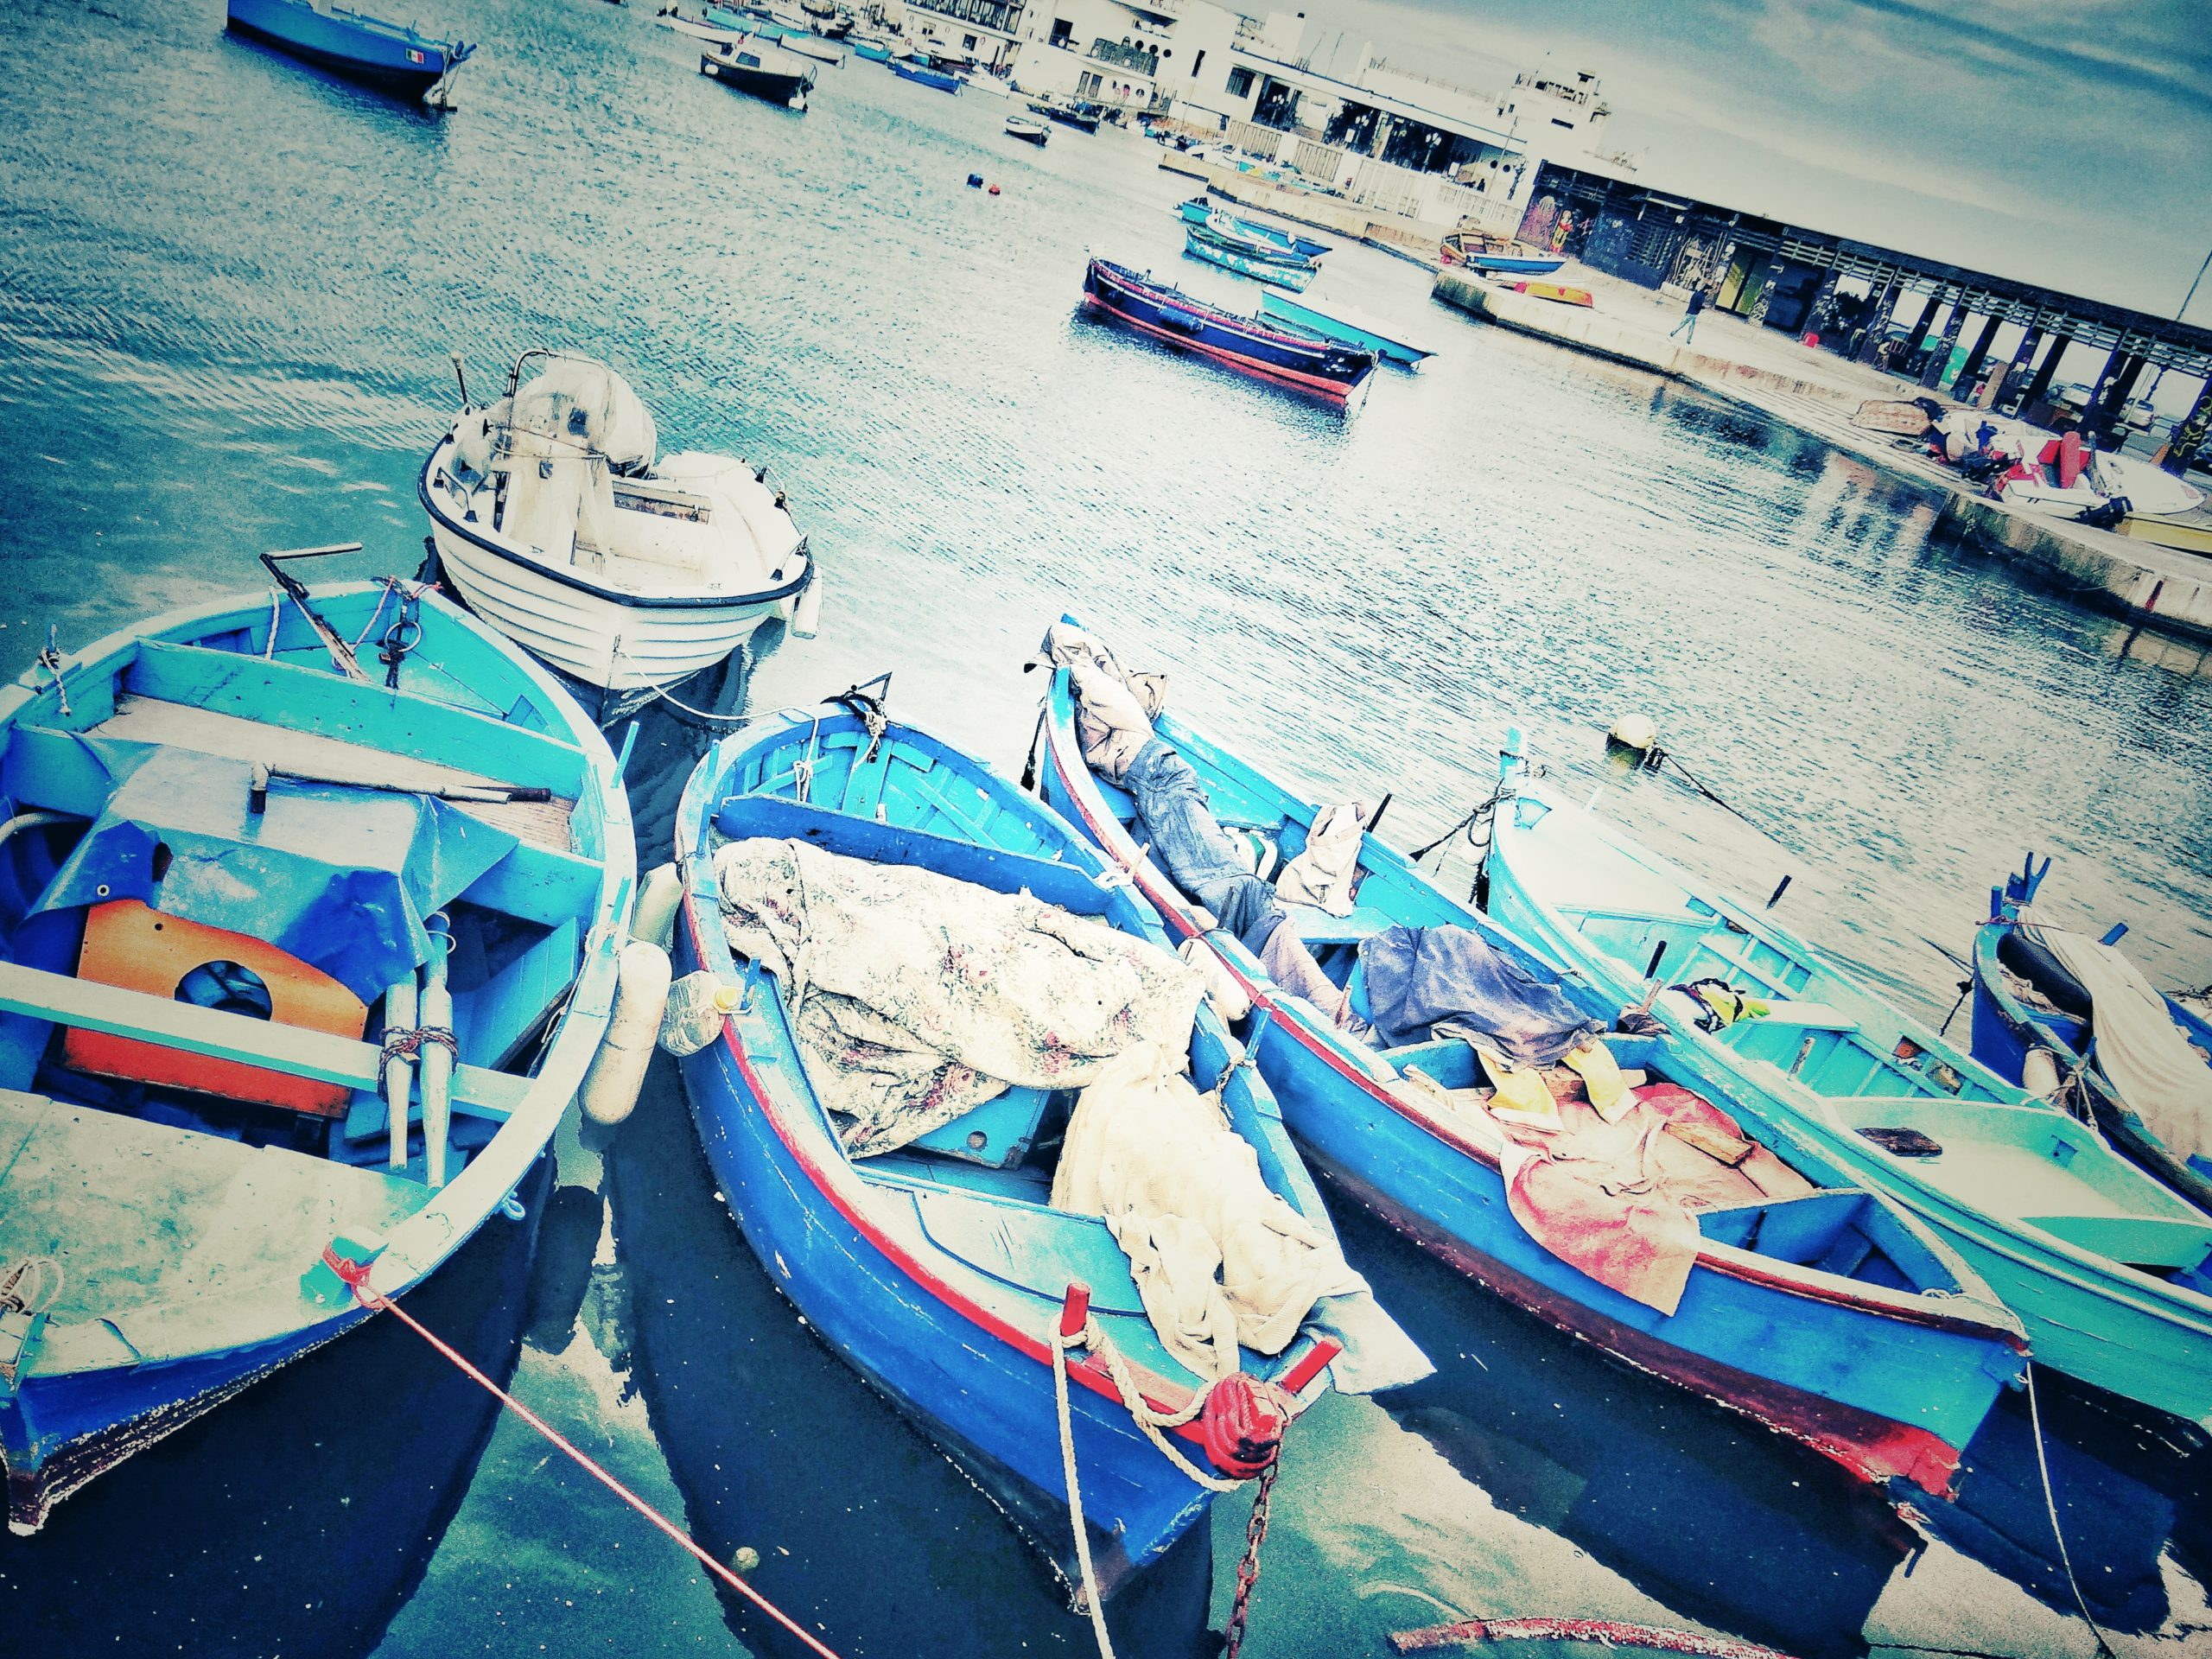 Blue fishing boats at the old port in Bari.